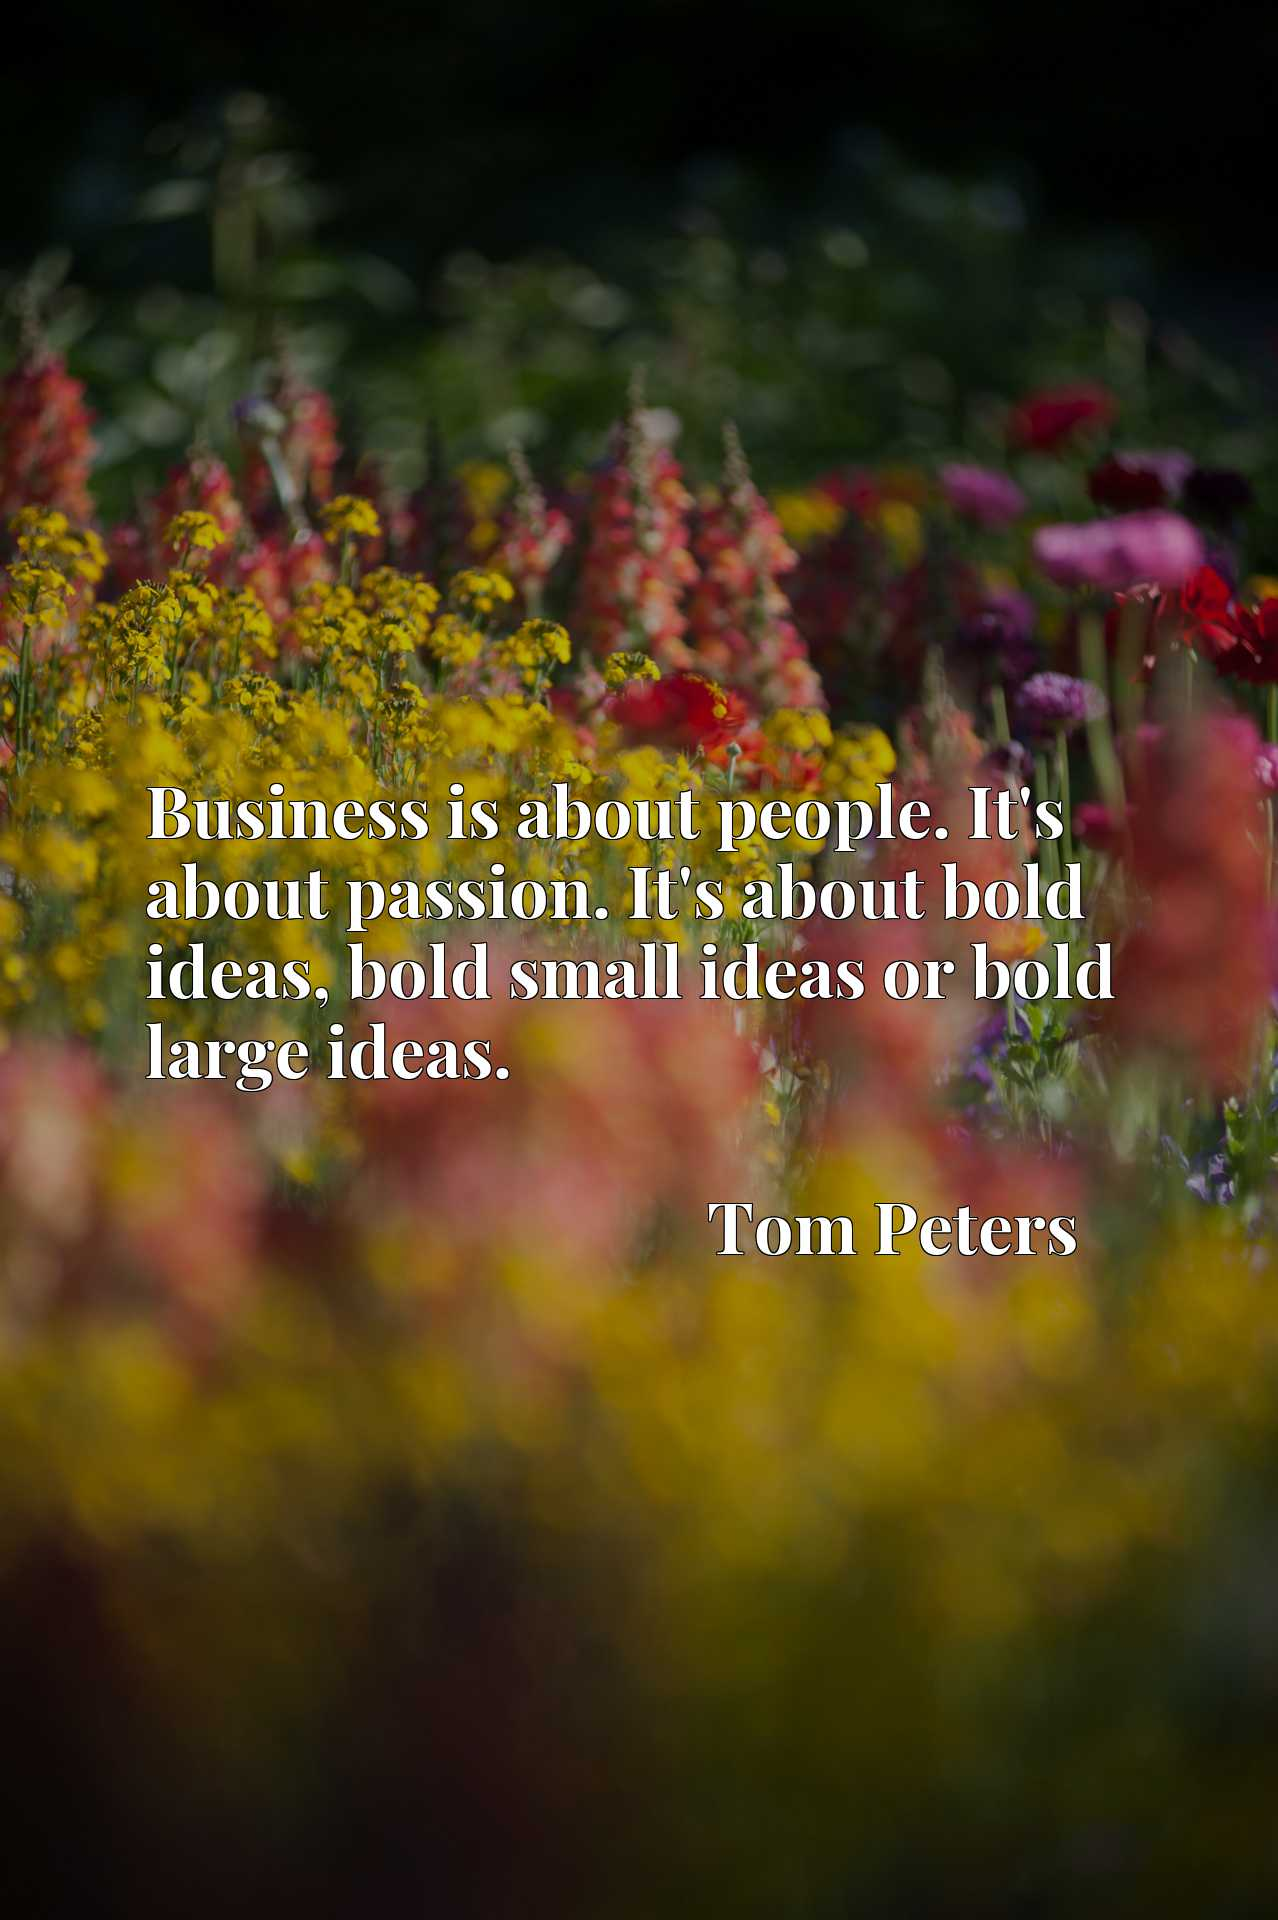 Business is about people. It's about passion. It's about bold ideas, bold small ideas or bold large ideas.